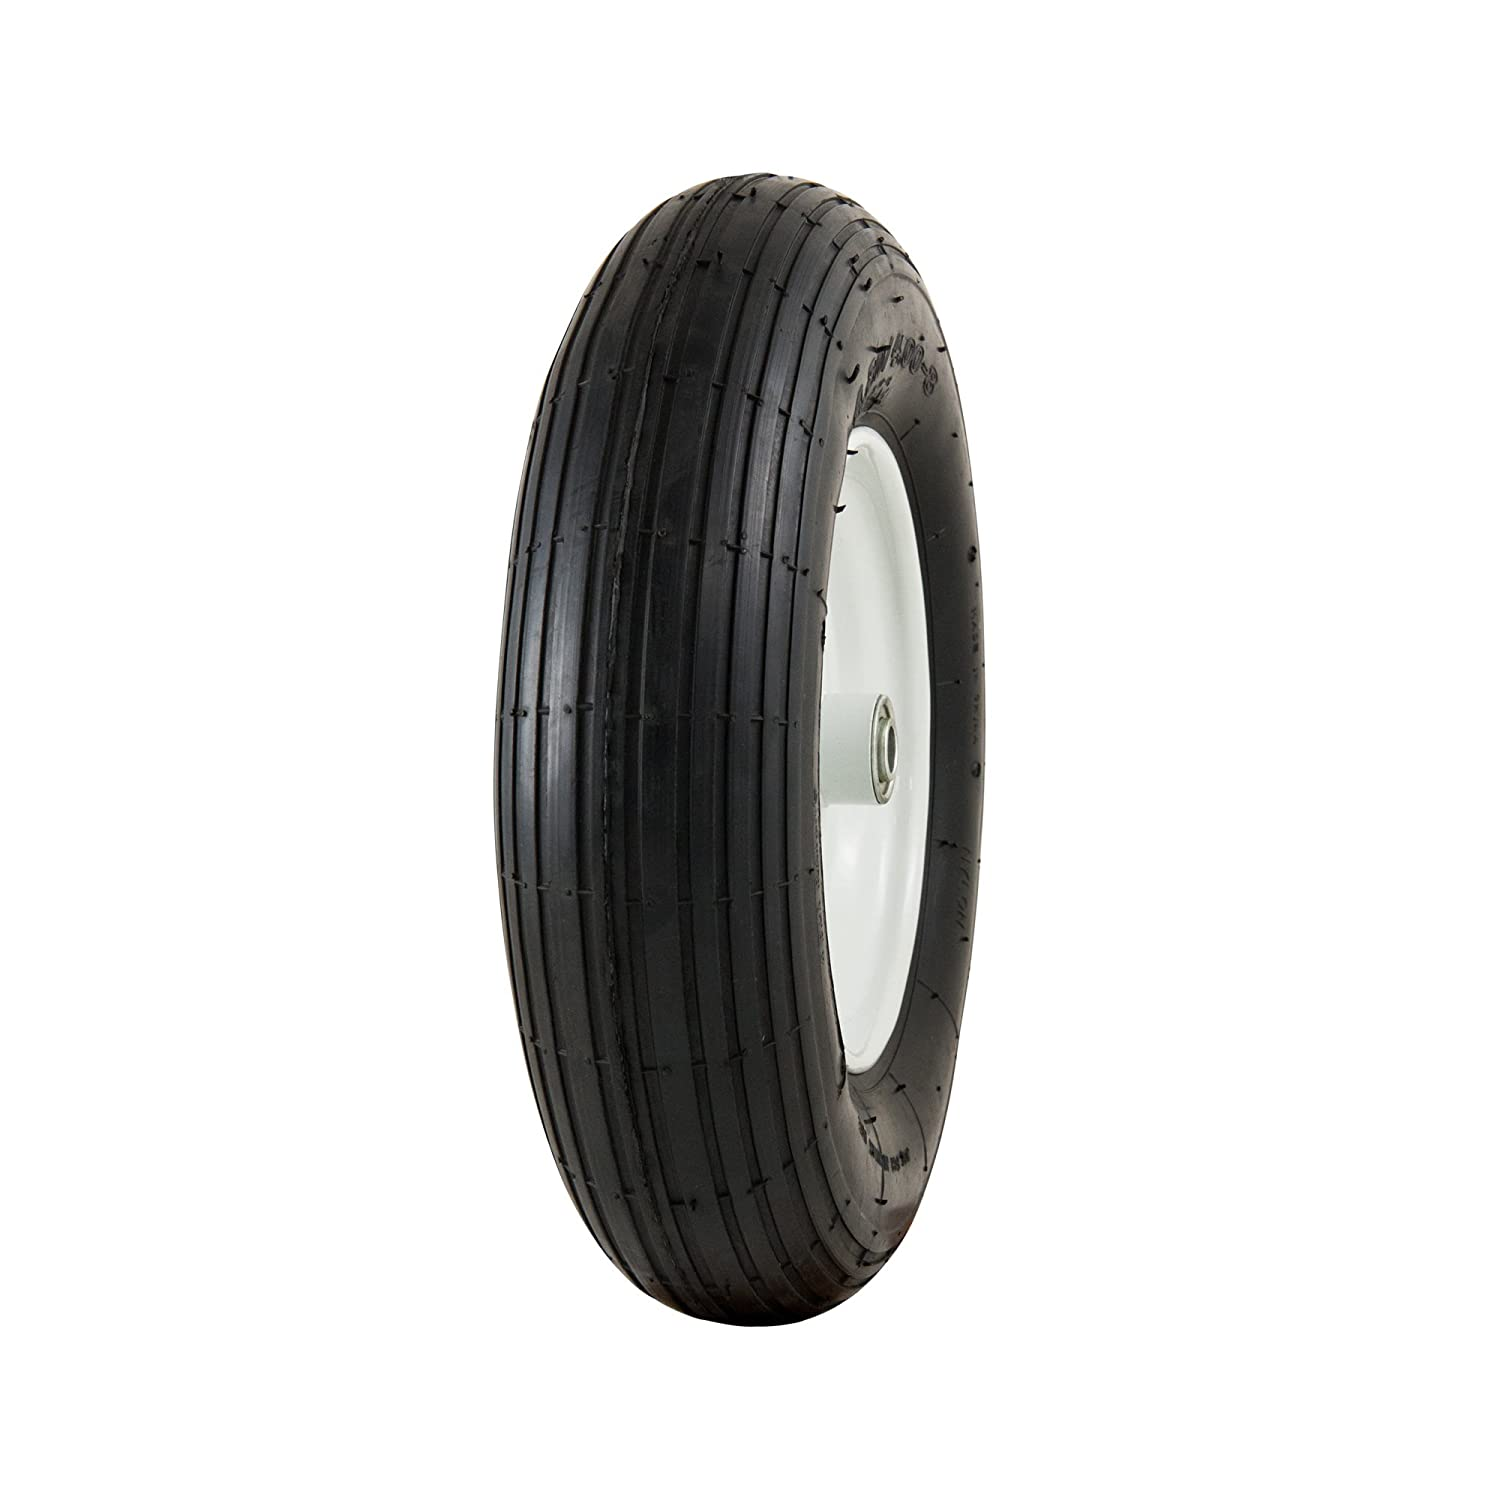 "Marathon 4.80/4.00-8"" Pneumatic (Air-Filled) Tire on Wheel, 3"" Hub, 5/8"" Bearings"